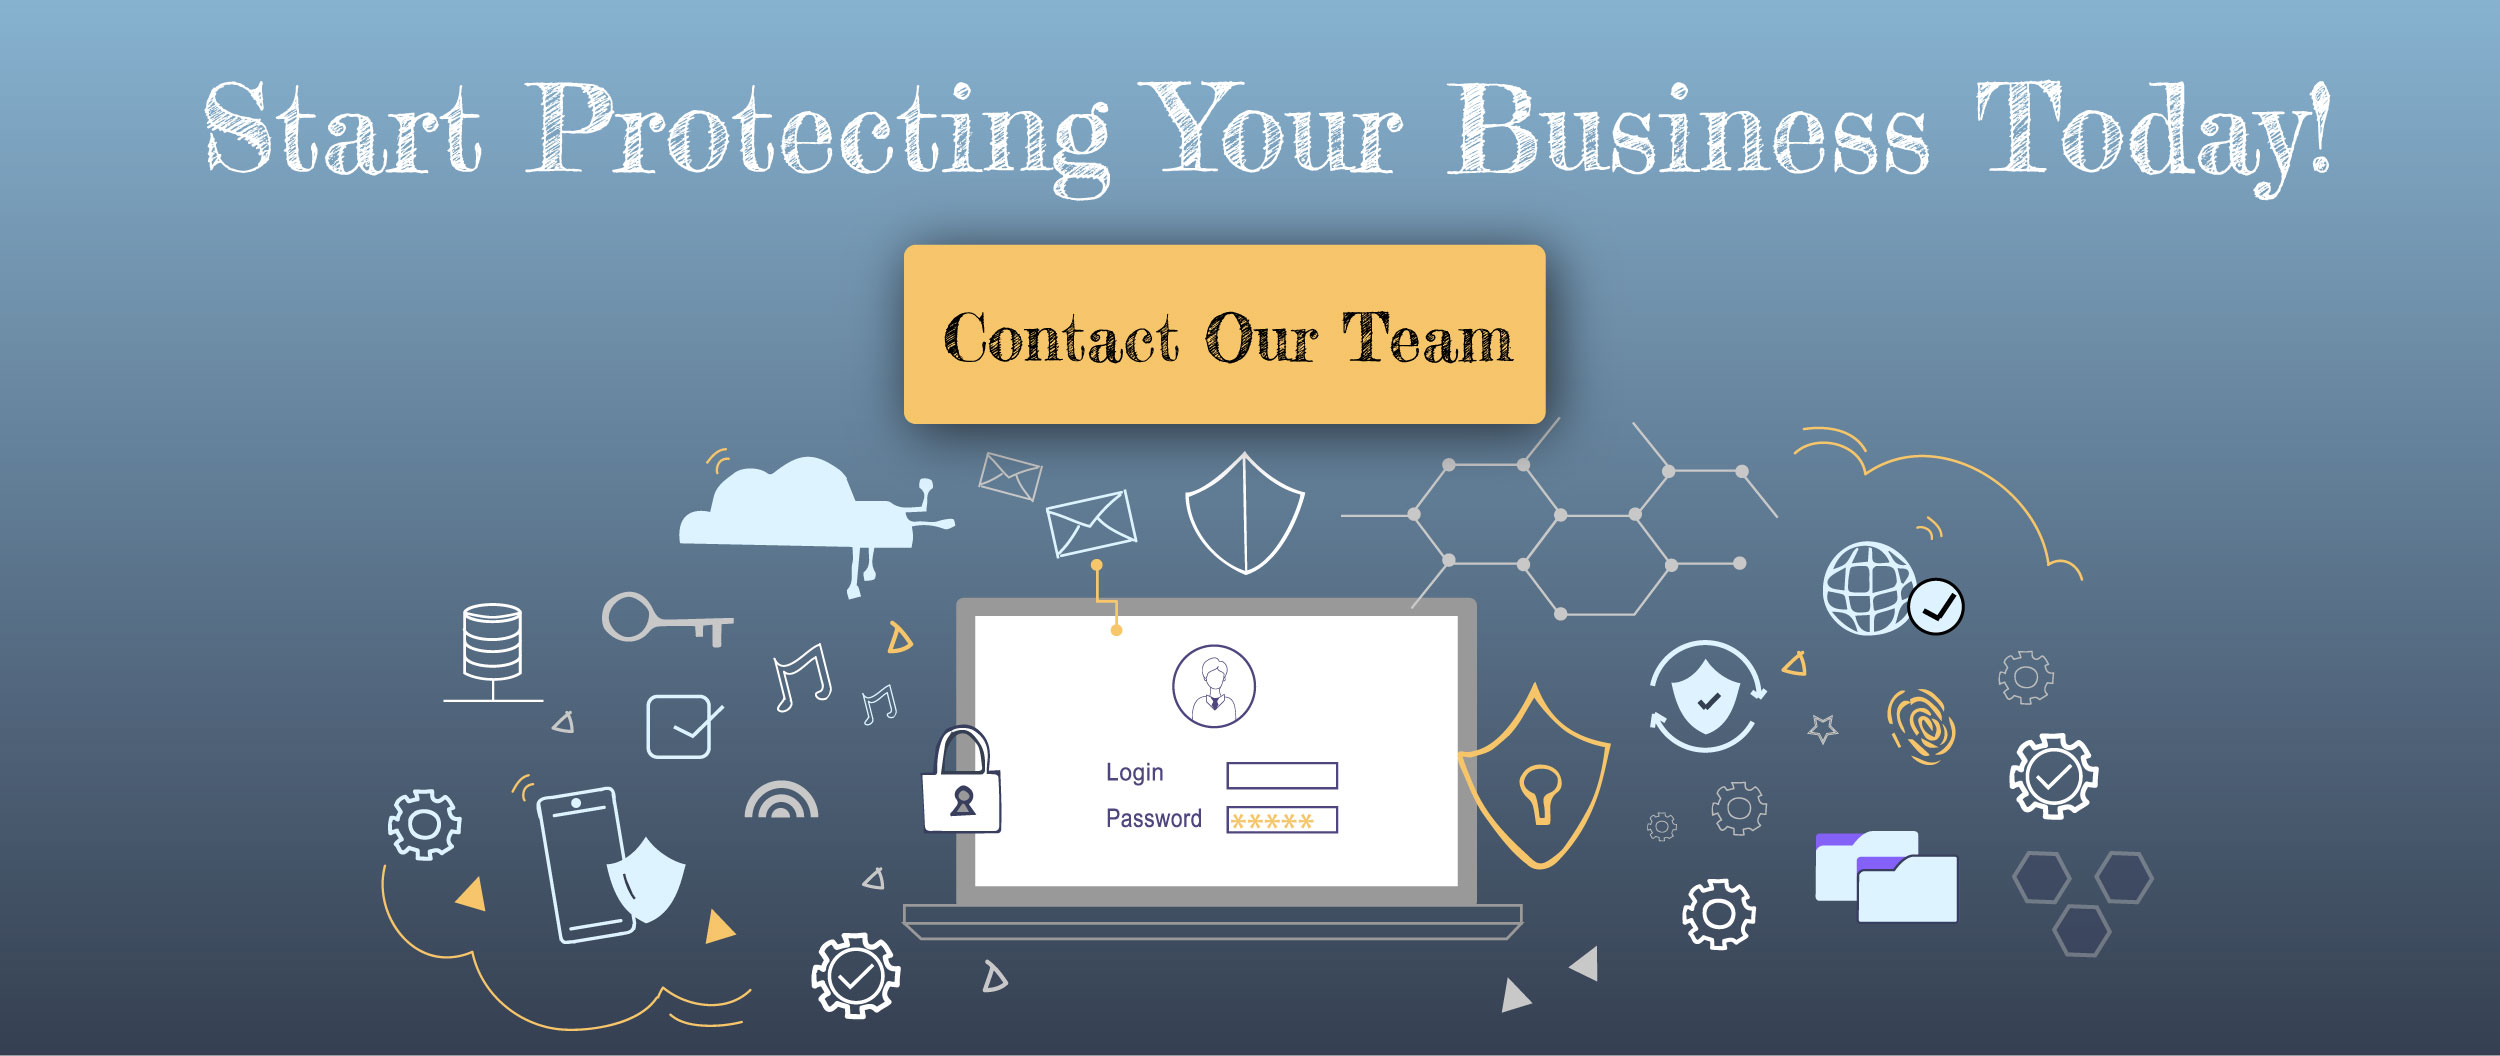 Protect Your Business Today